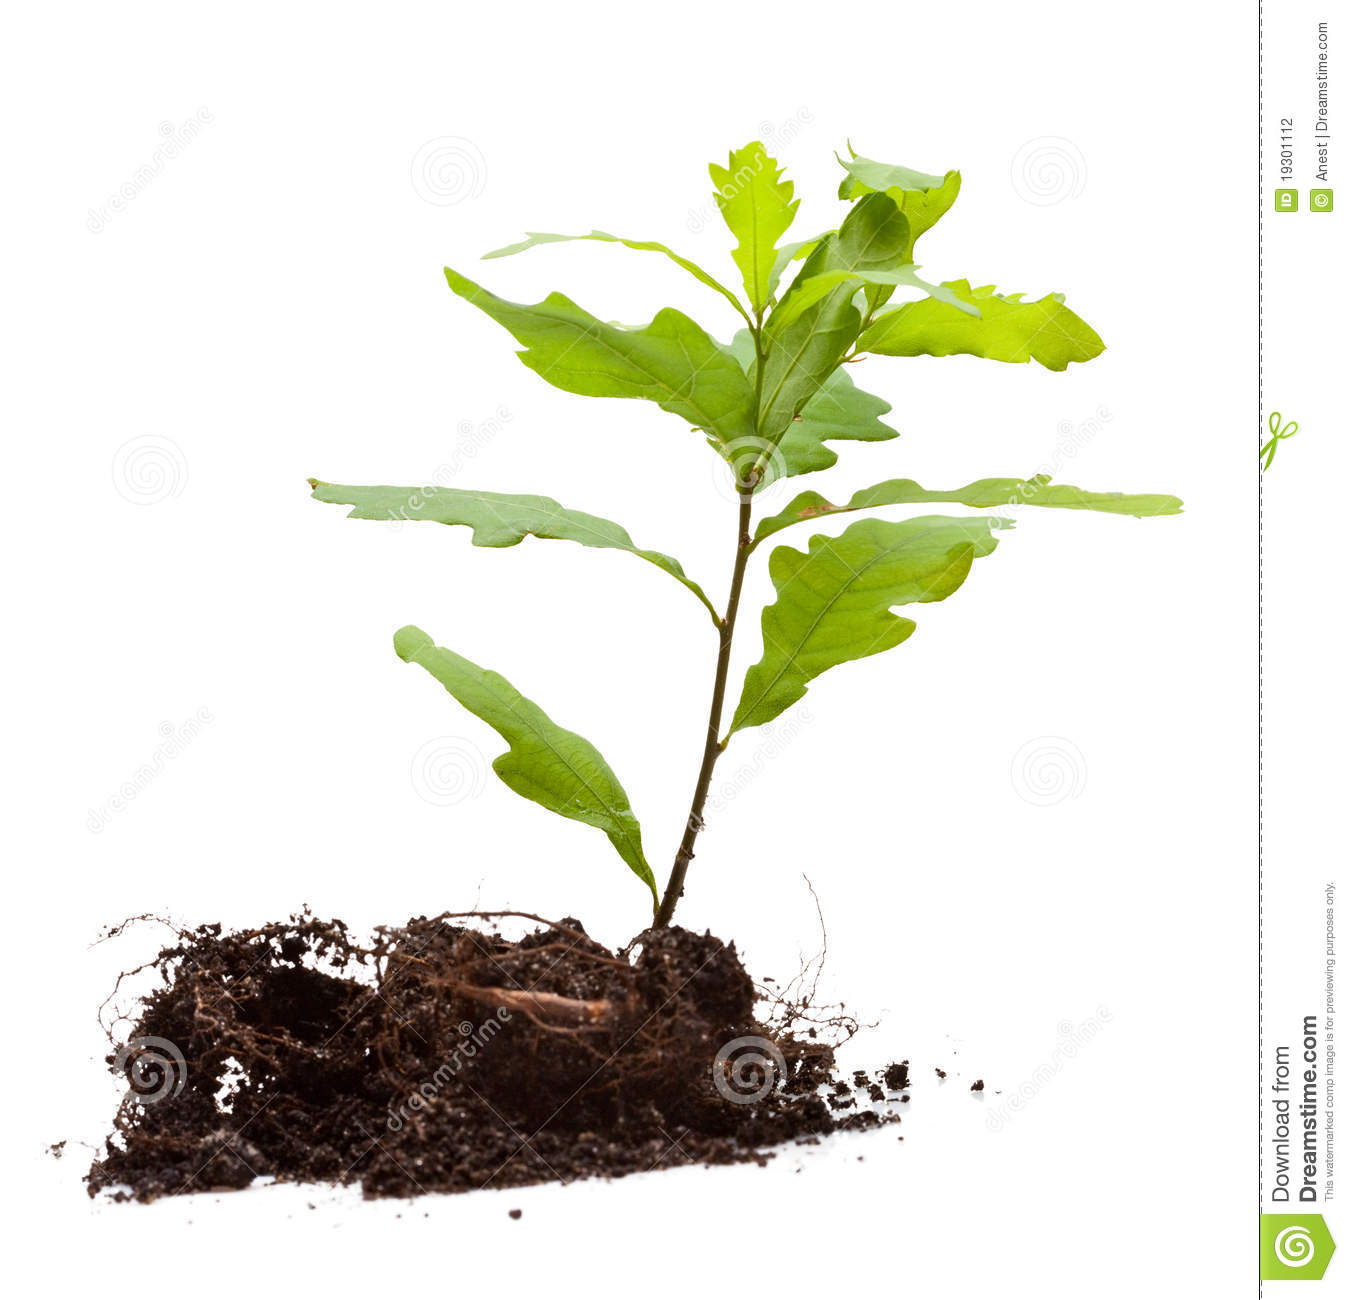 Oak tree sapling stock photos images & pictures 256 images